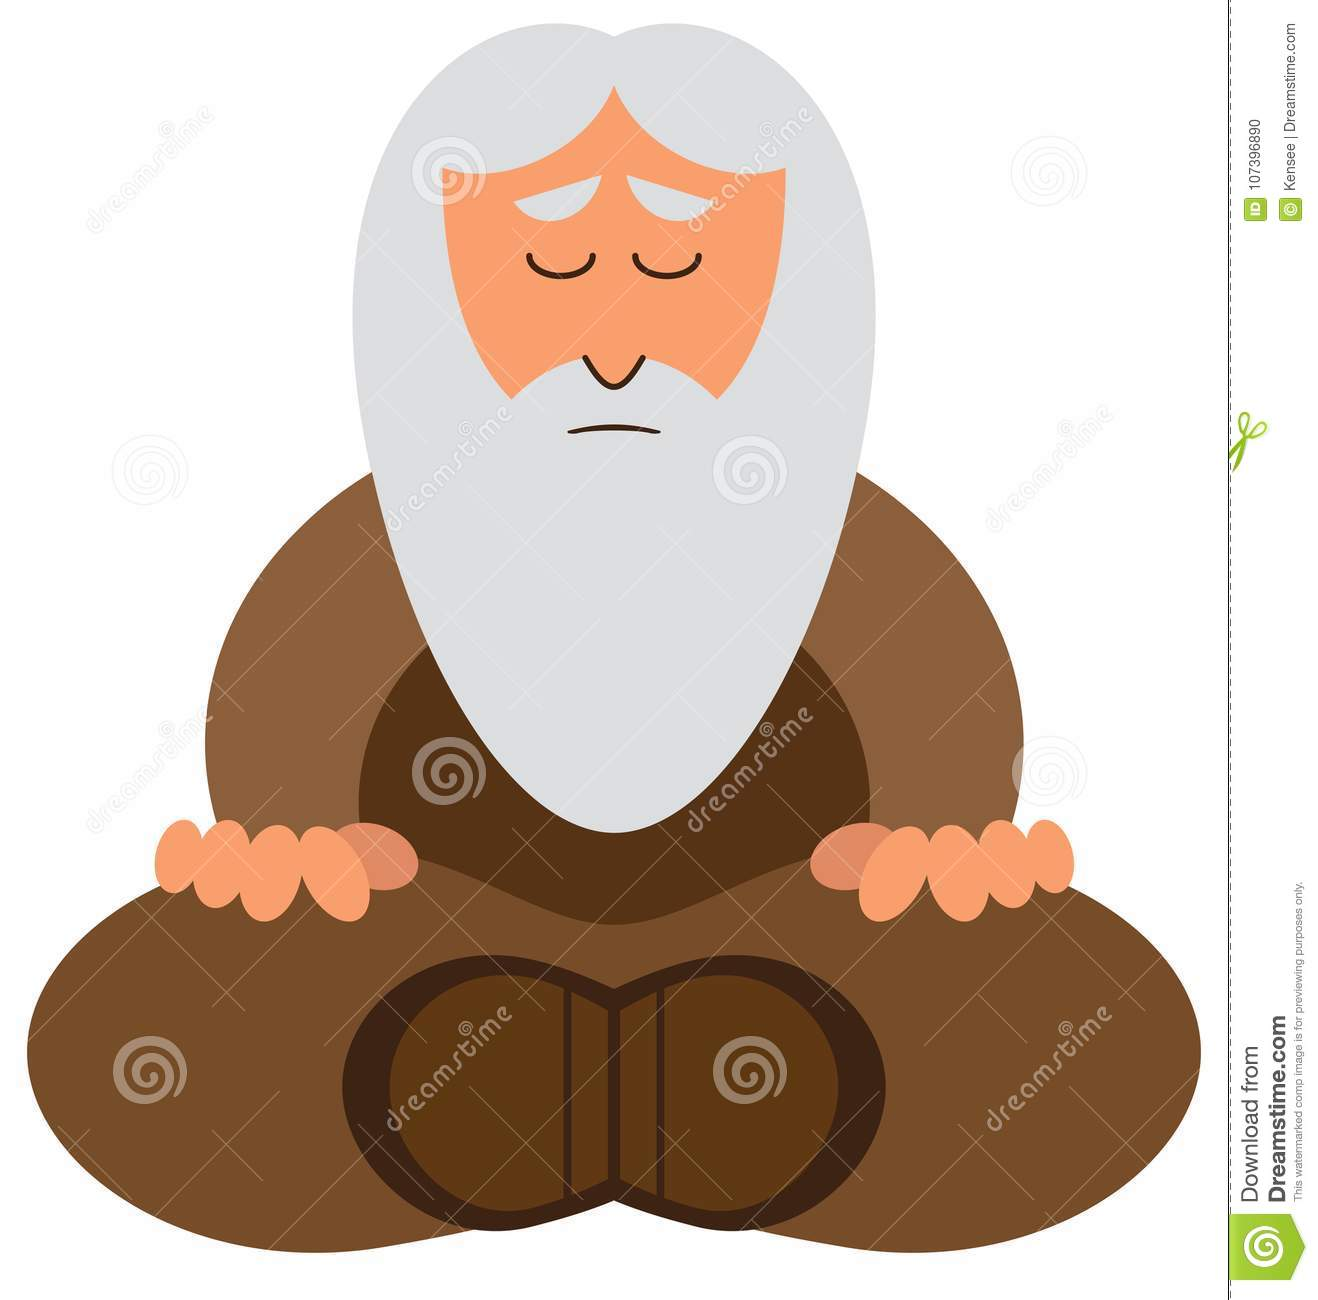 hight resolution of wise man stock illustrations 2 626 wise man stock illustrations vectors clipart dreamstime